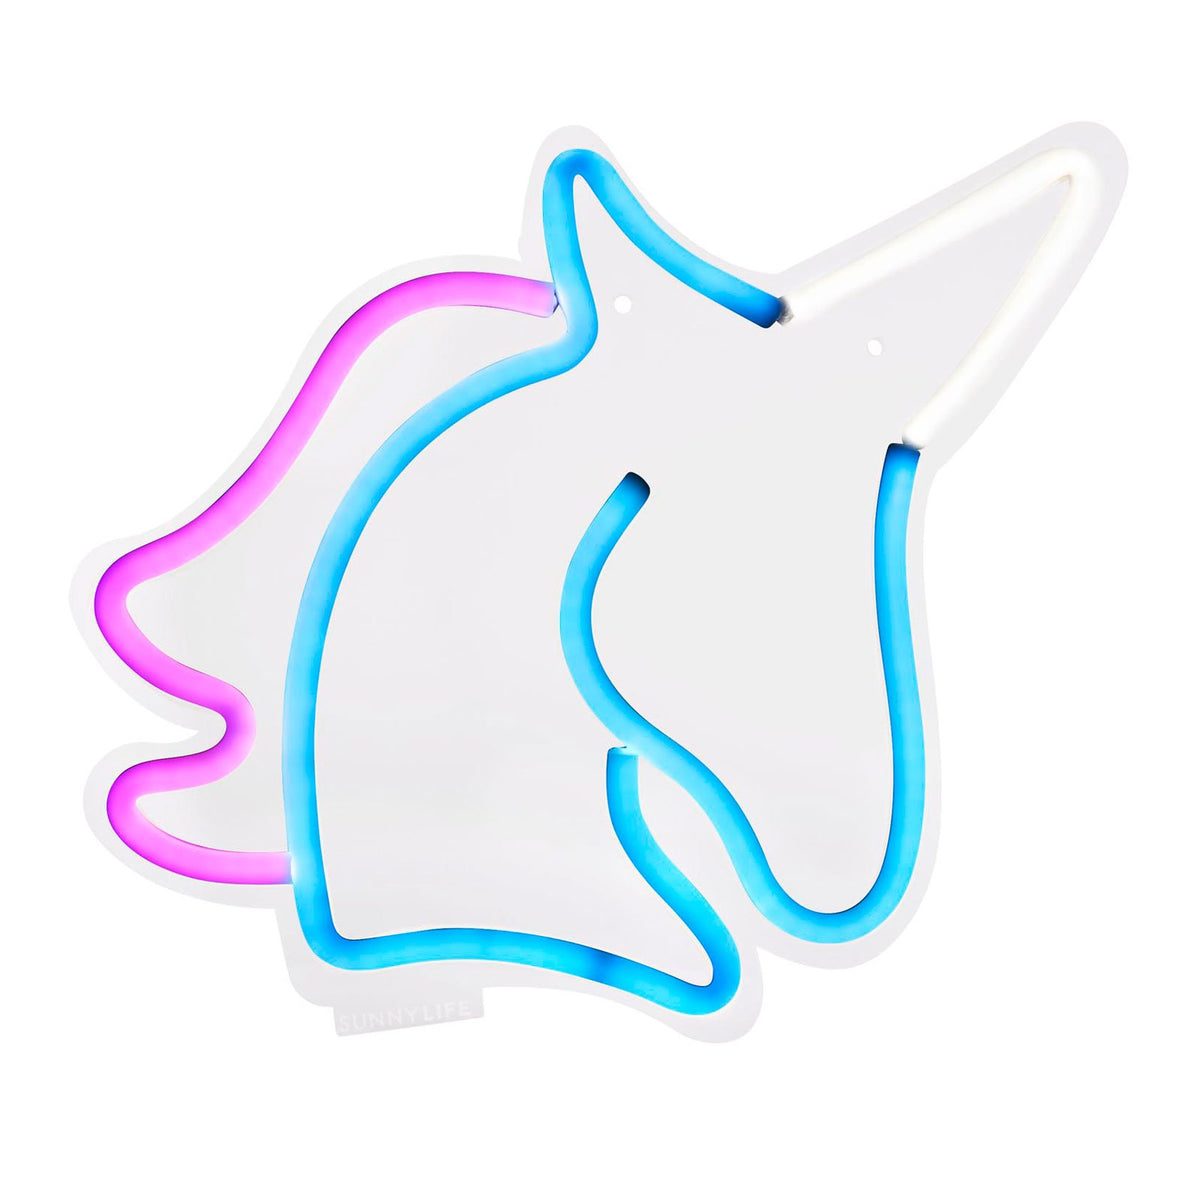 Sunnylife | Neon LED Wall Light Small EU | Unicorn